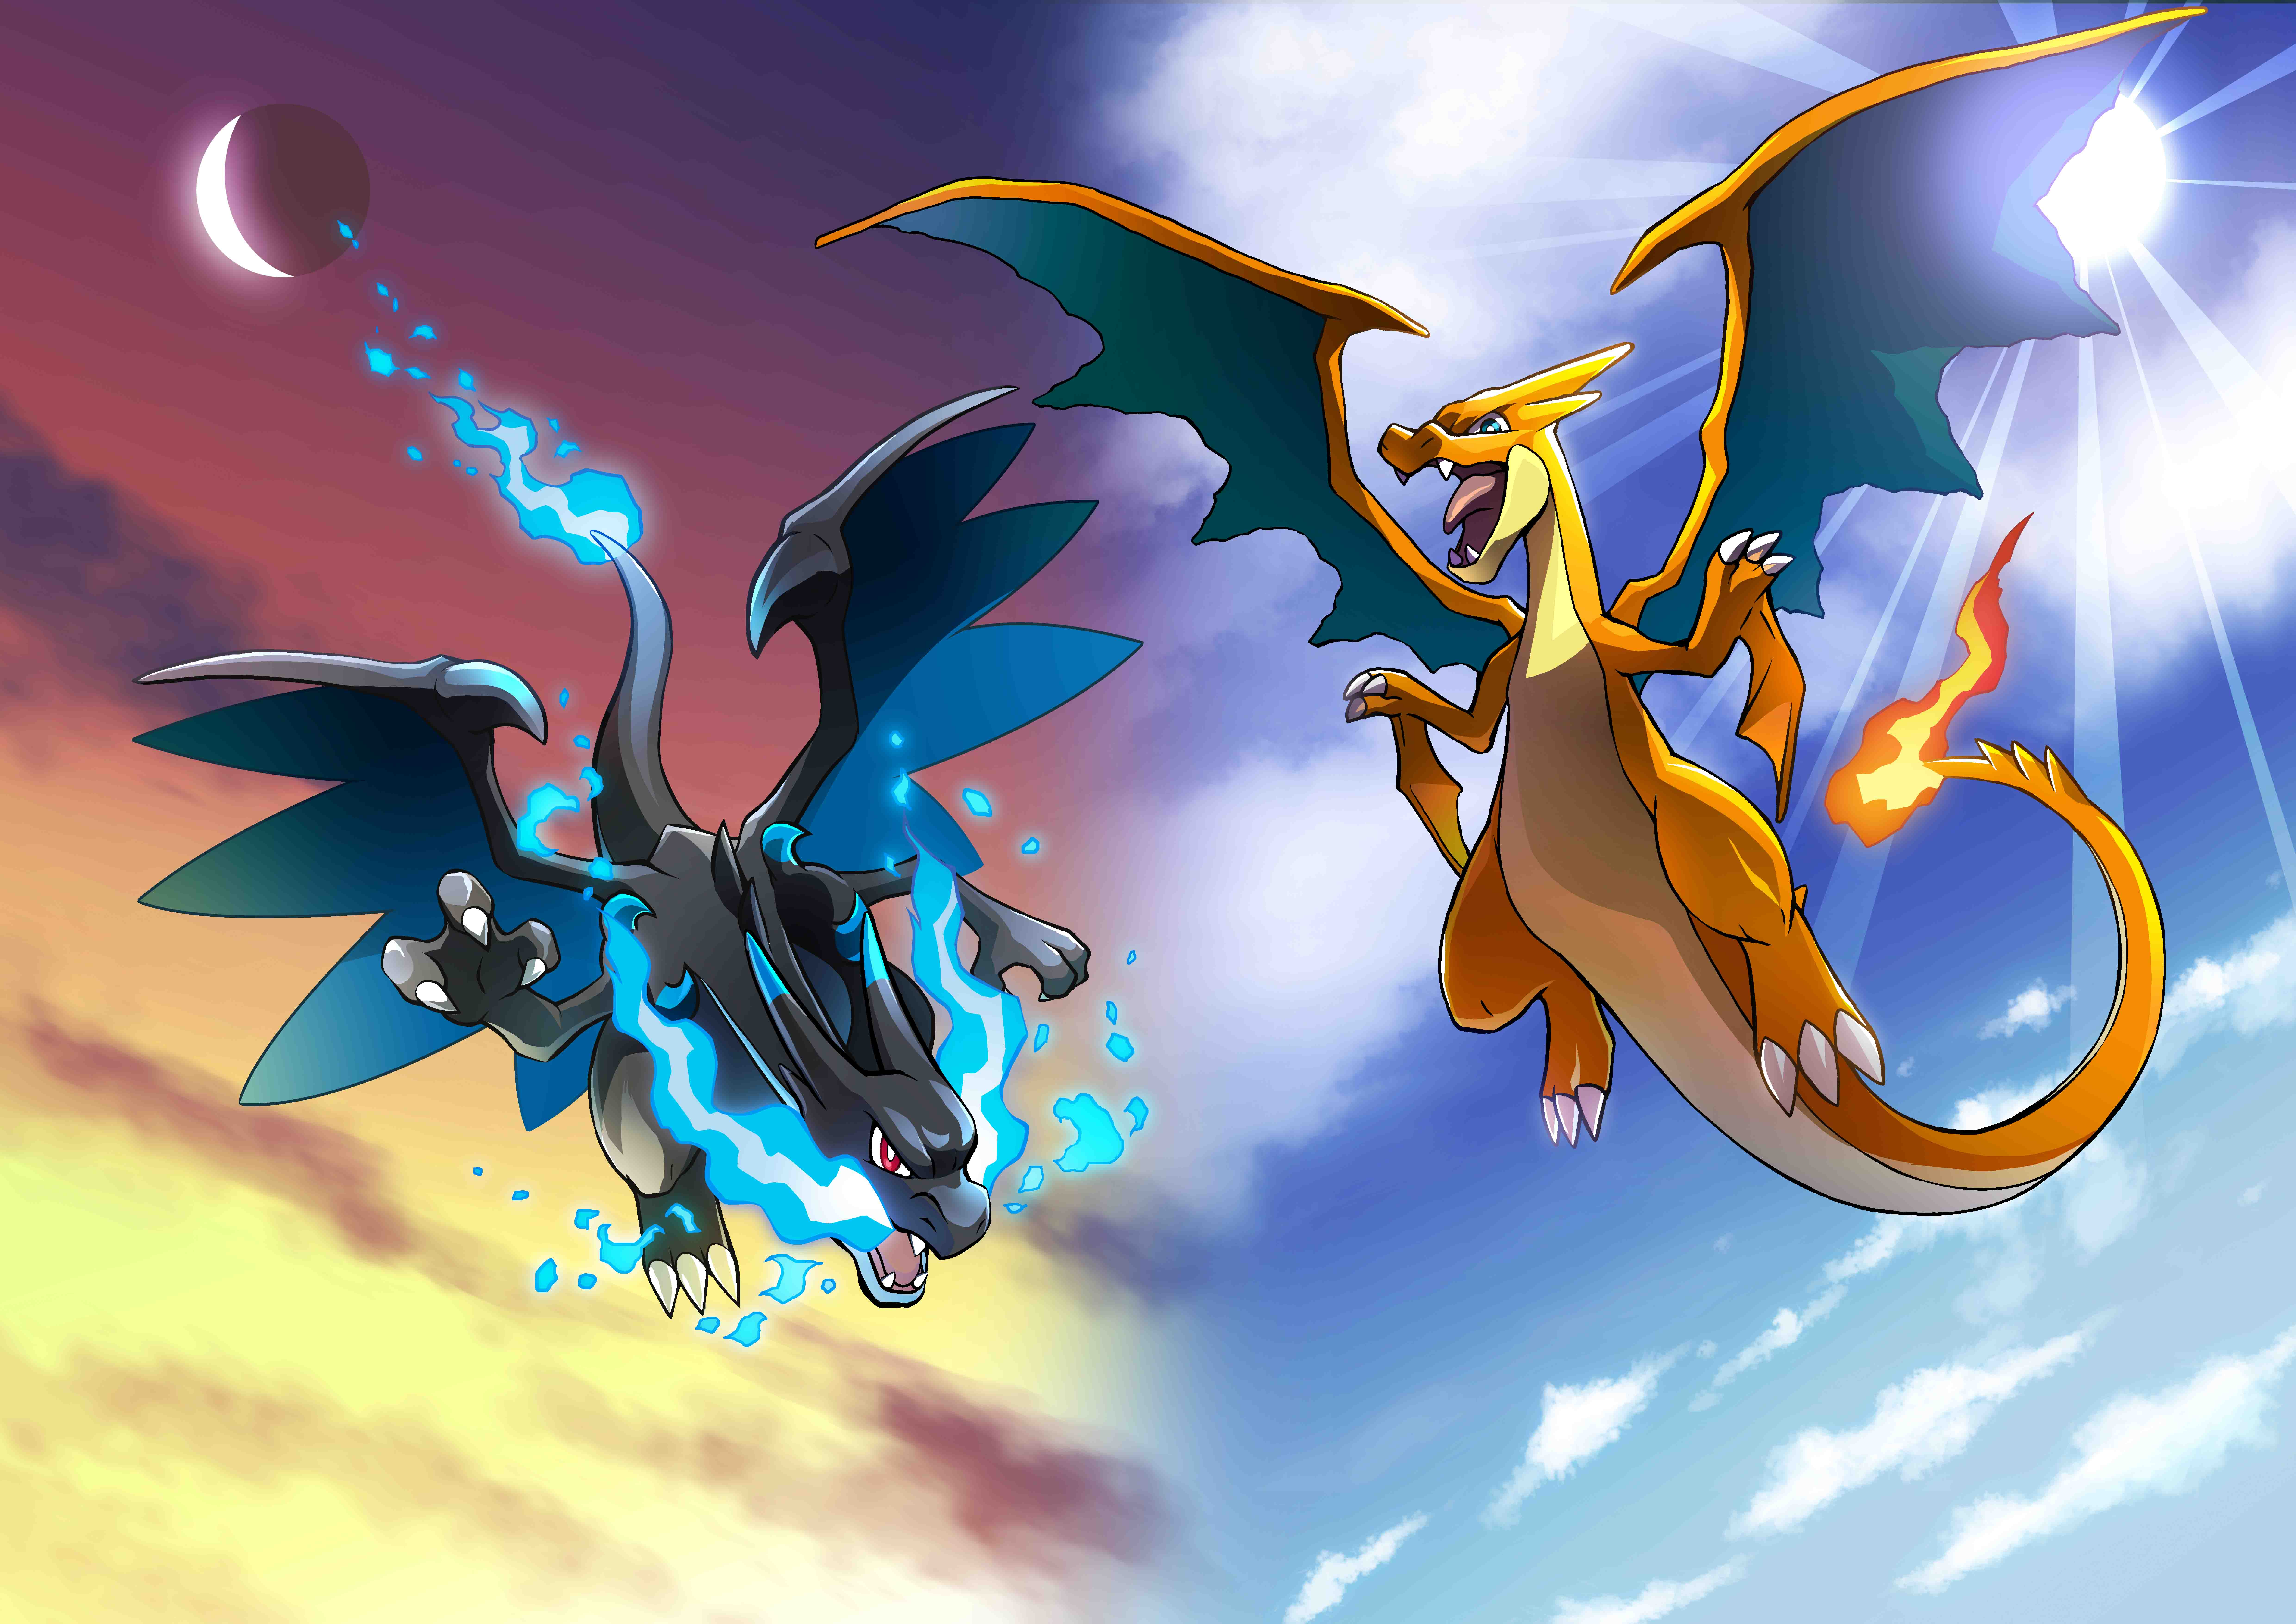 Anime Cosplay News Reviews Get A Mega Charizard From GAME 9921x7016